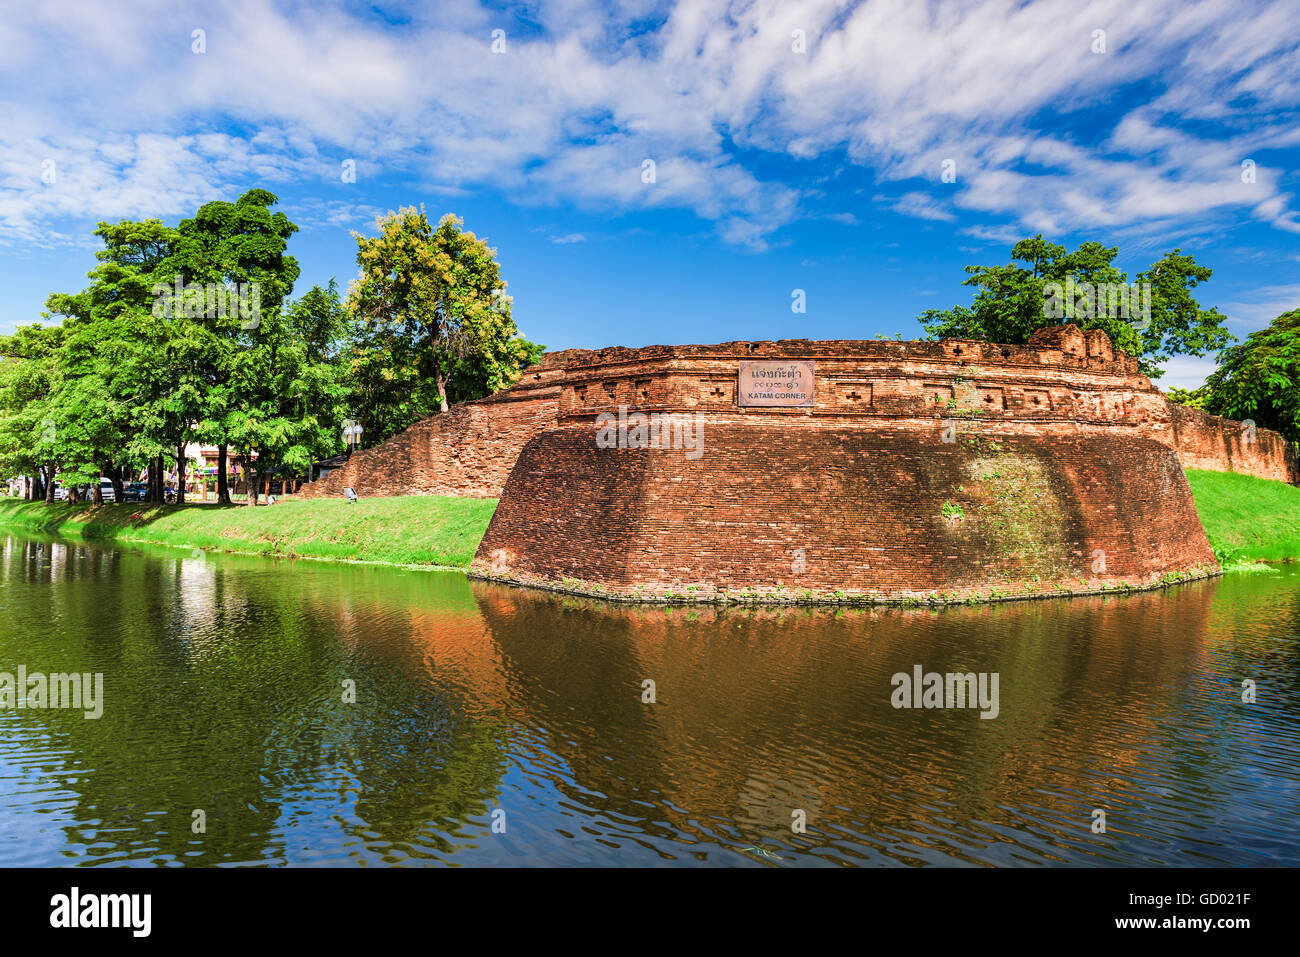 Chiang Mai, Thailand old city ancient wall and moat at Katam Corner. - Stock Image